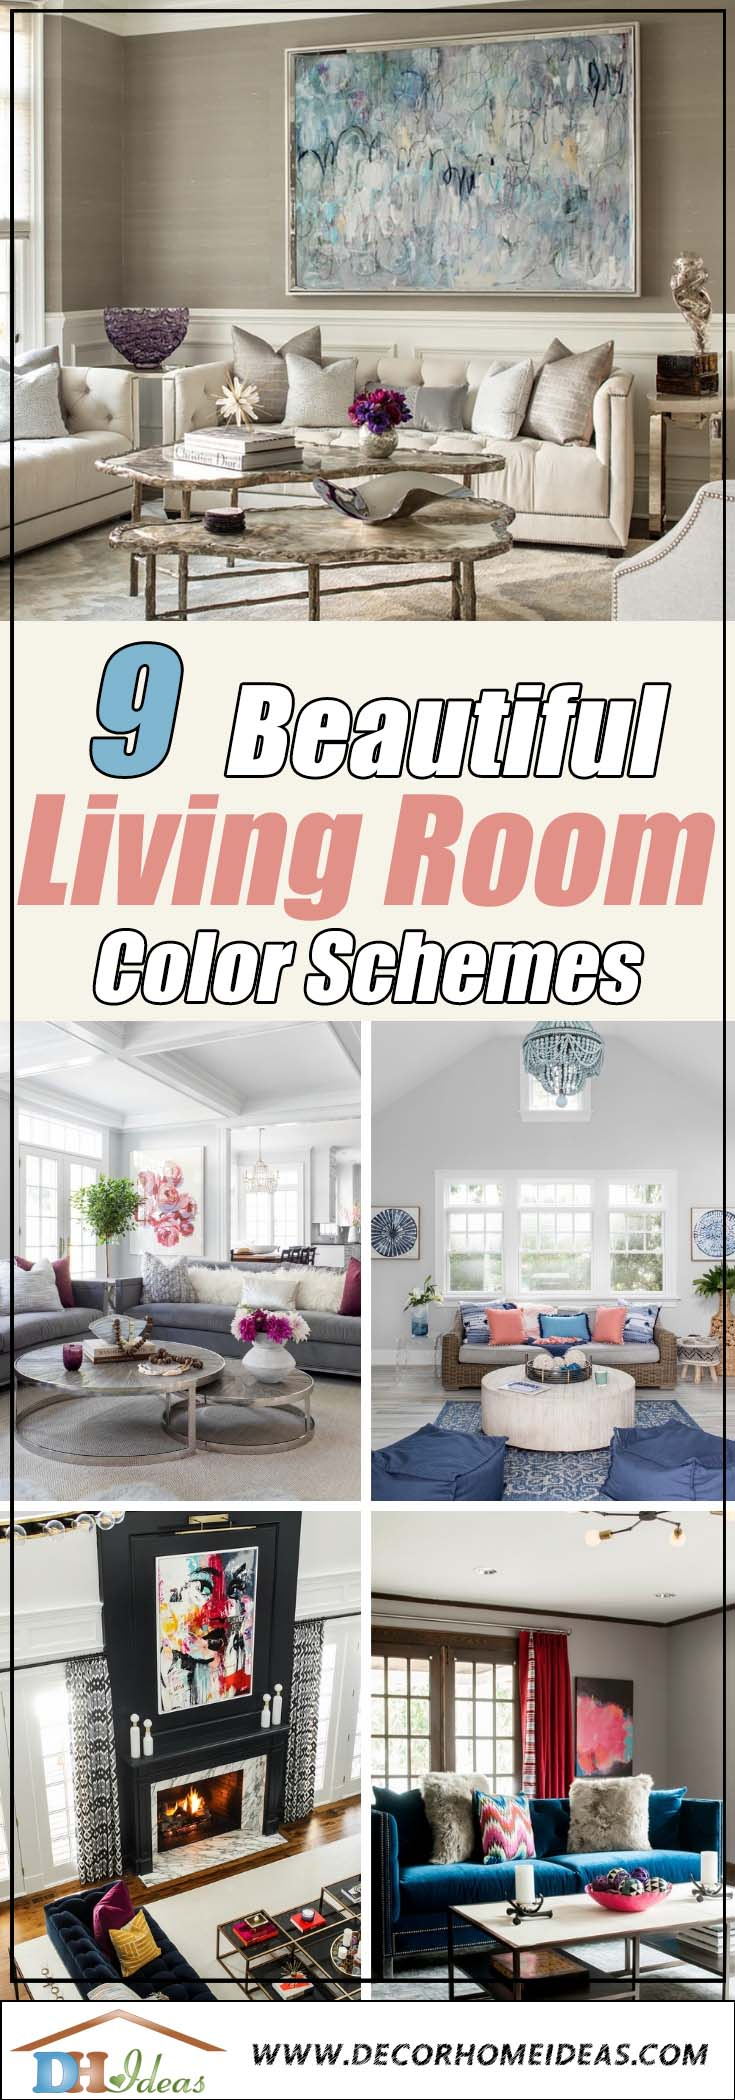 Beautiful Living Room Color Schemes #paintcolor #livingroom #colorscheme #decorhomeideas